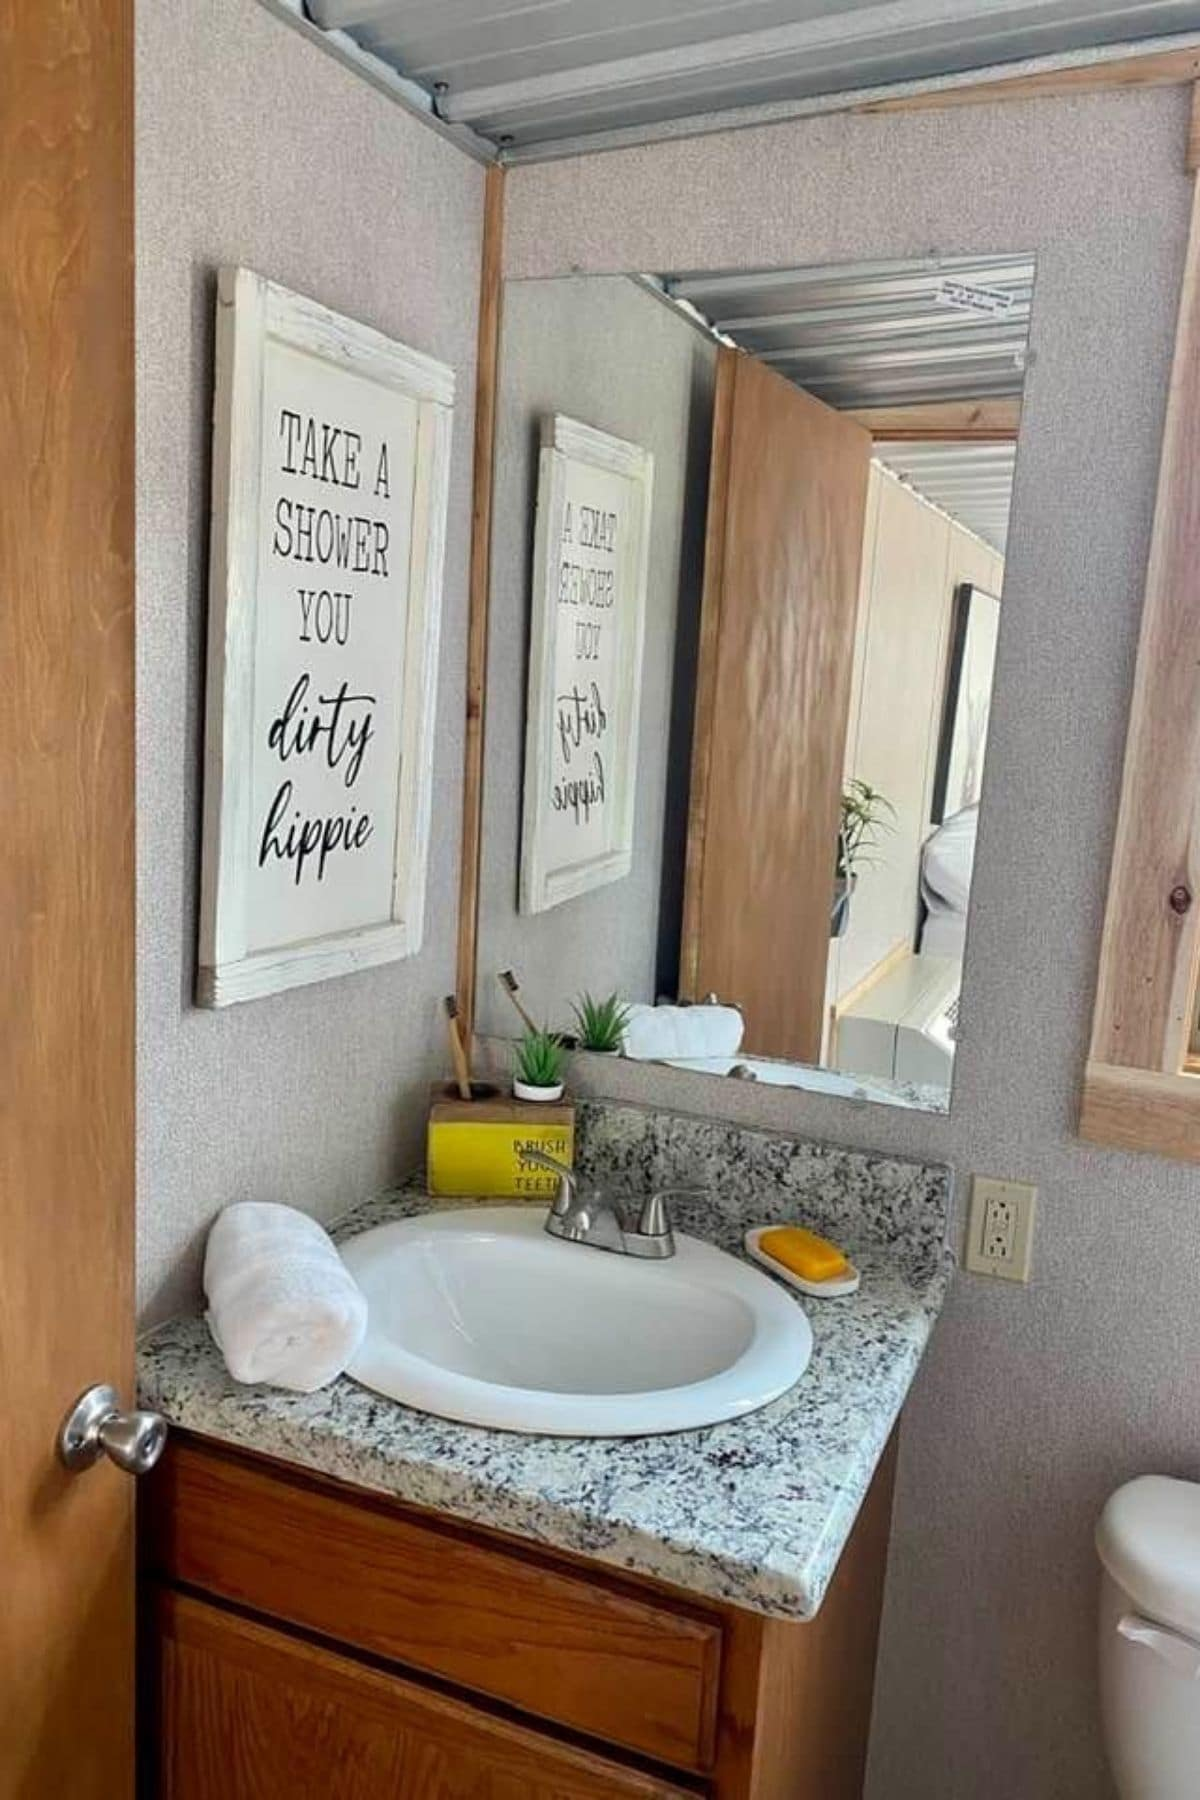 Marble topped vanity with round white sink below long wall mounted mirror